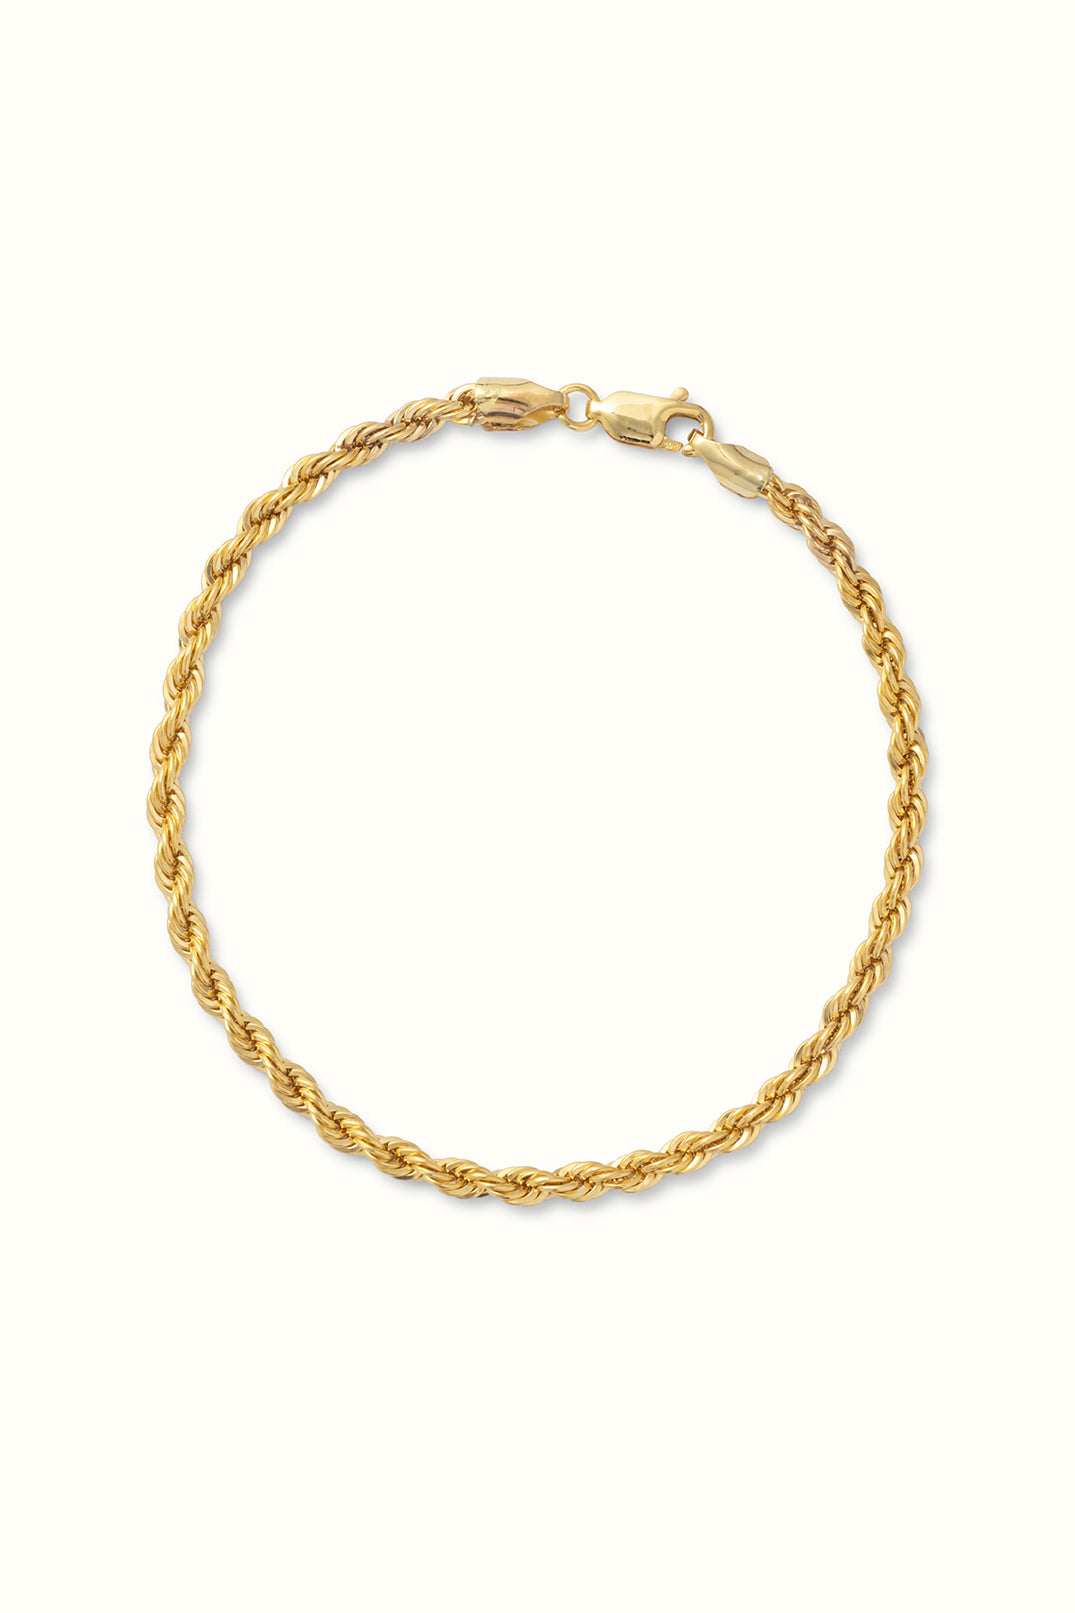 gold filled rope chain bracelet on a white surface